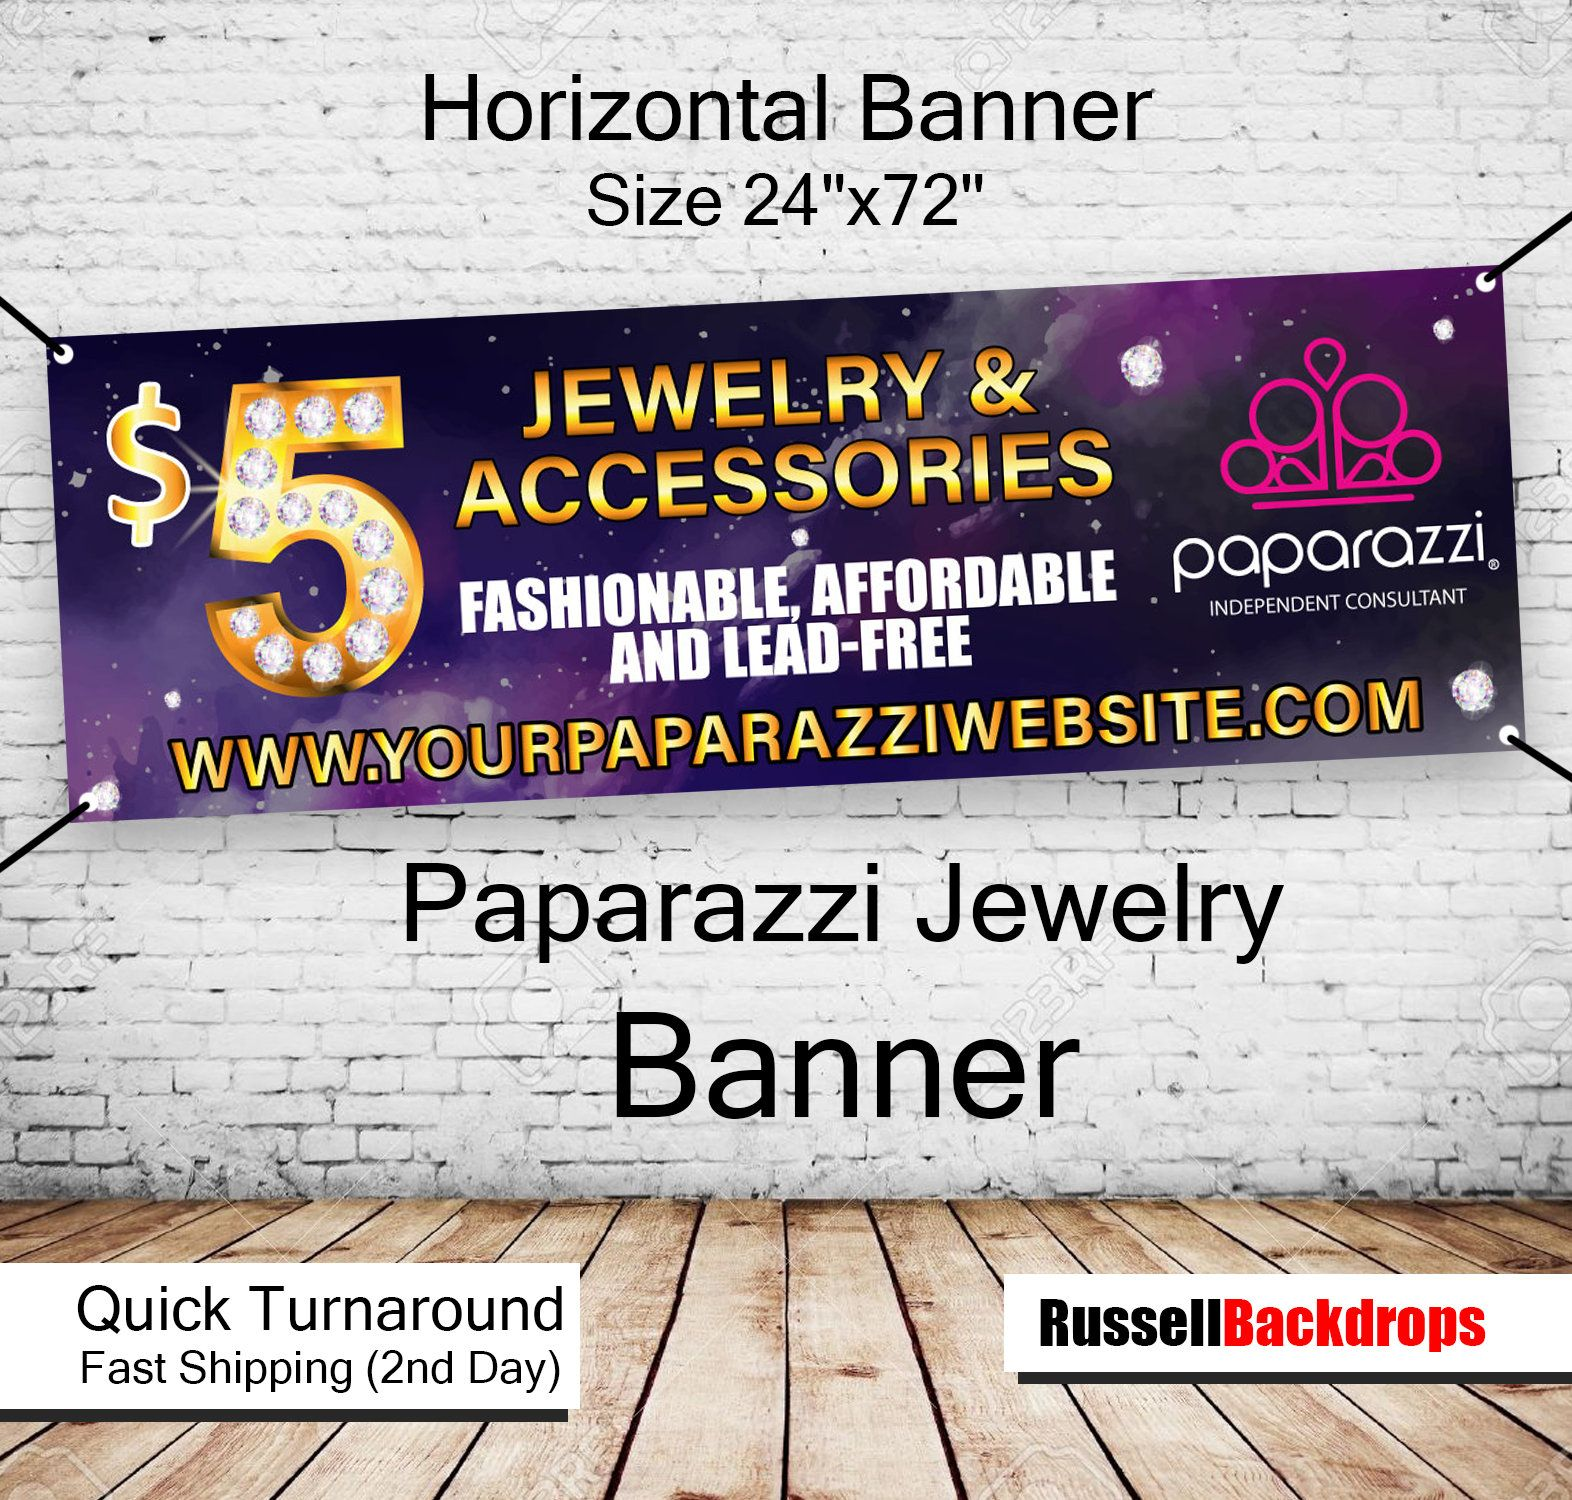 Paparazzi Jewelry Consultant Banner Printed Or Digital